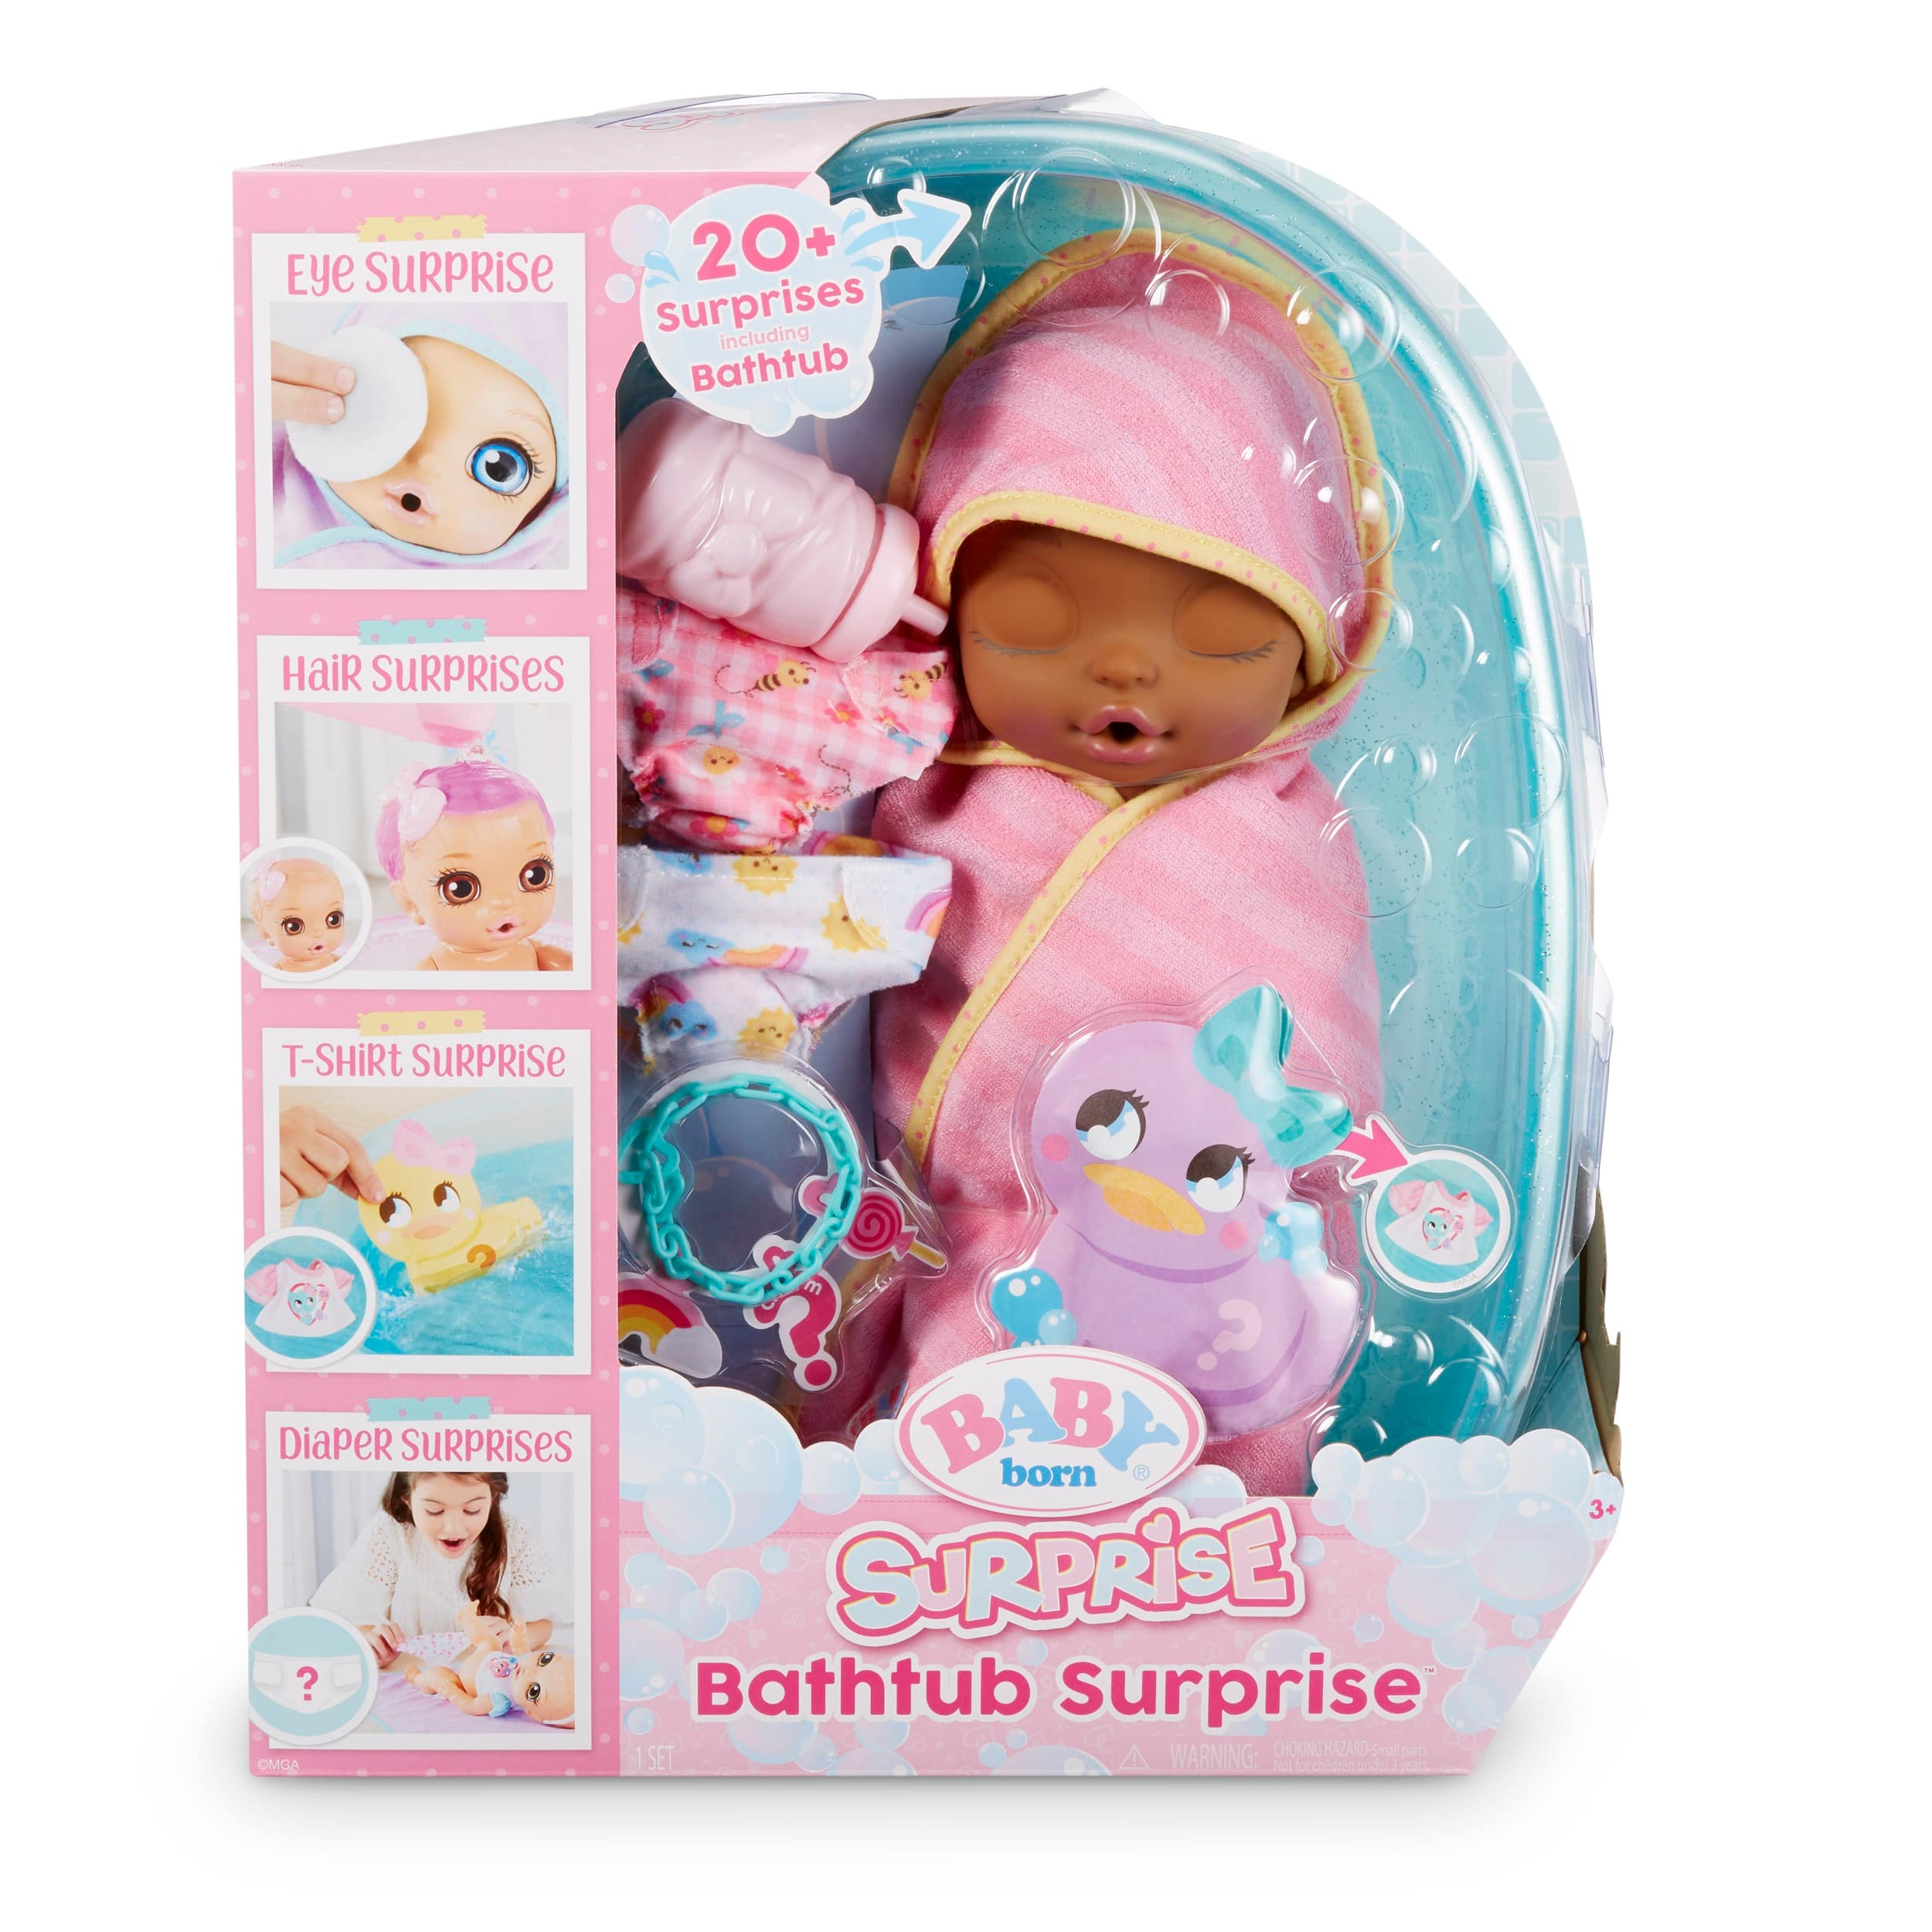 Baby Born Surprise Bathtub w/ 20+ surprises (various colors) $20 + Free Store Pickup at Walmart or F/S on $35+ or w/ Prime or on $25+